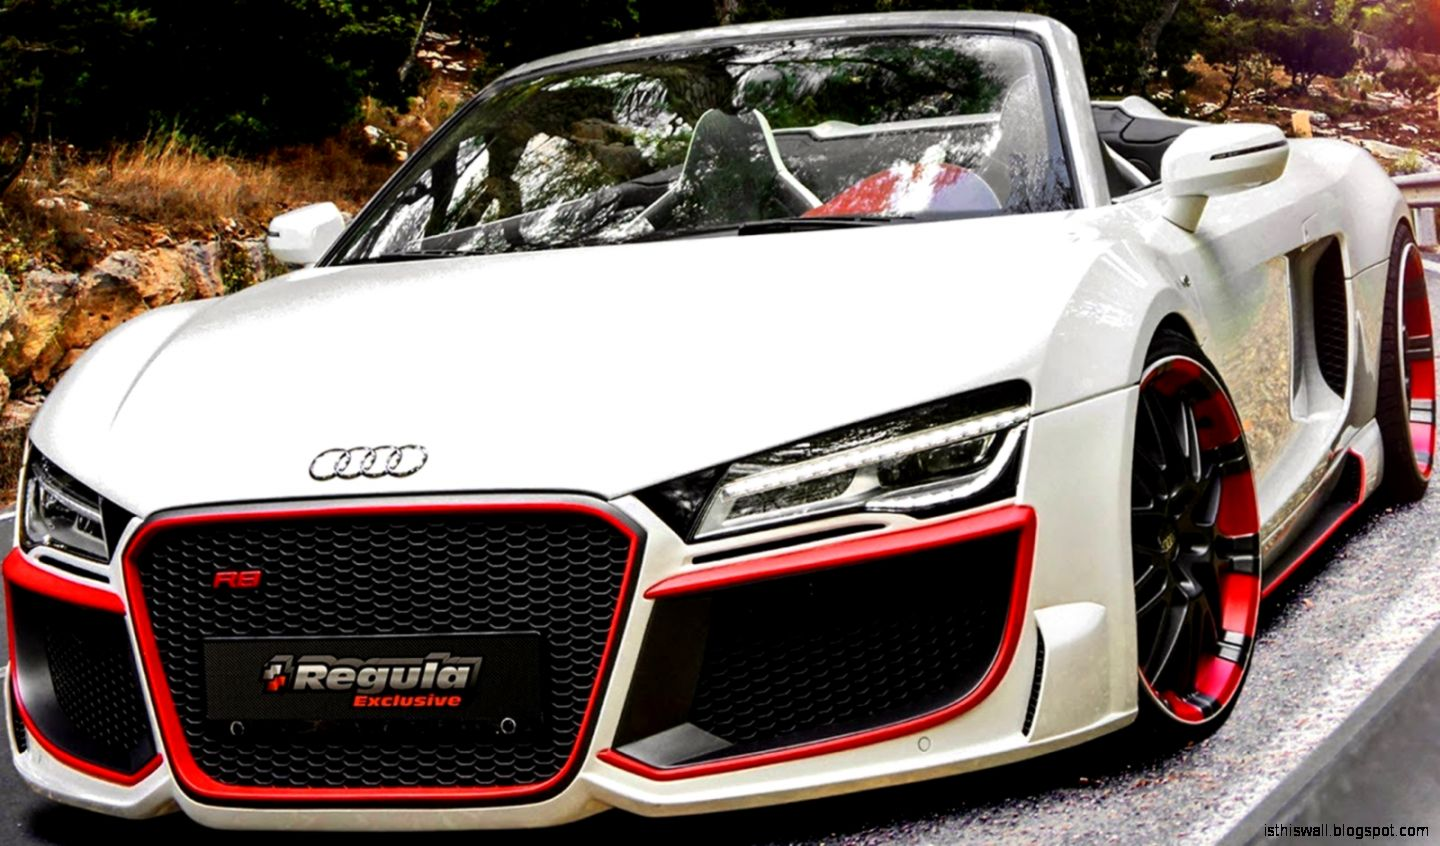 Regula Tuning Audi R8 V10 Spyder 2014 aro 20 52 525 cv   YouTube